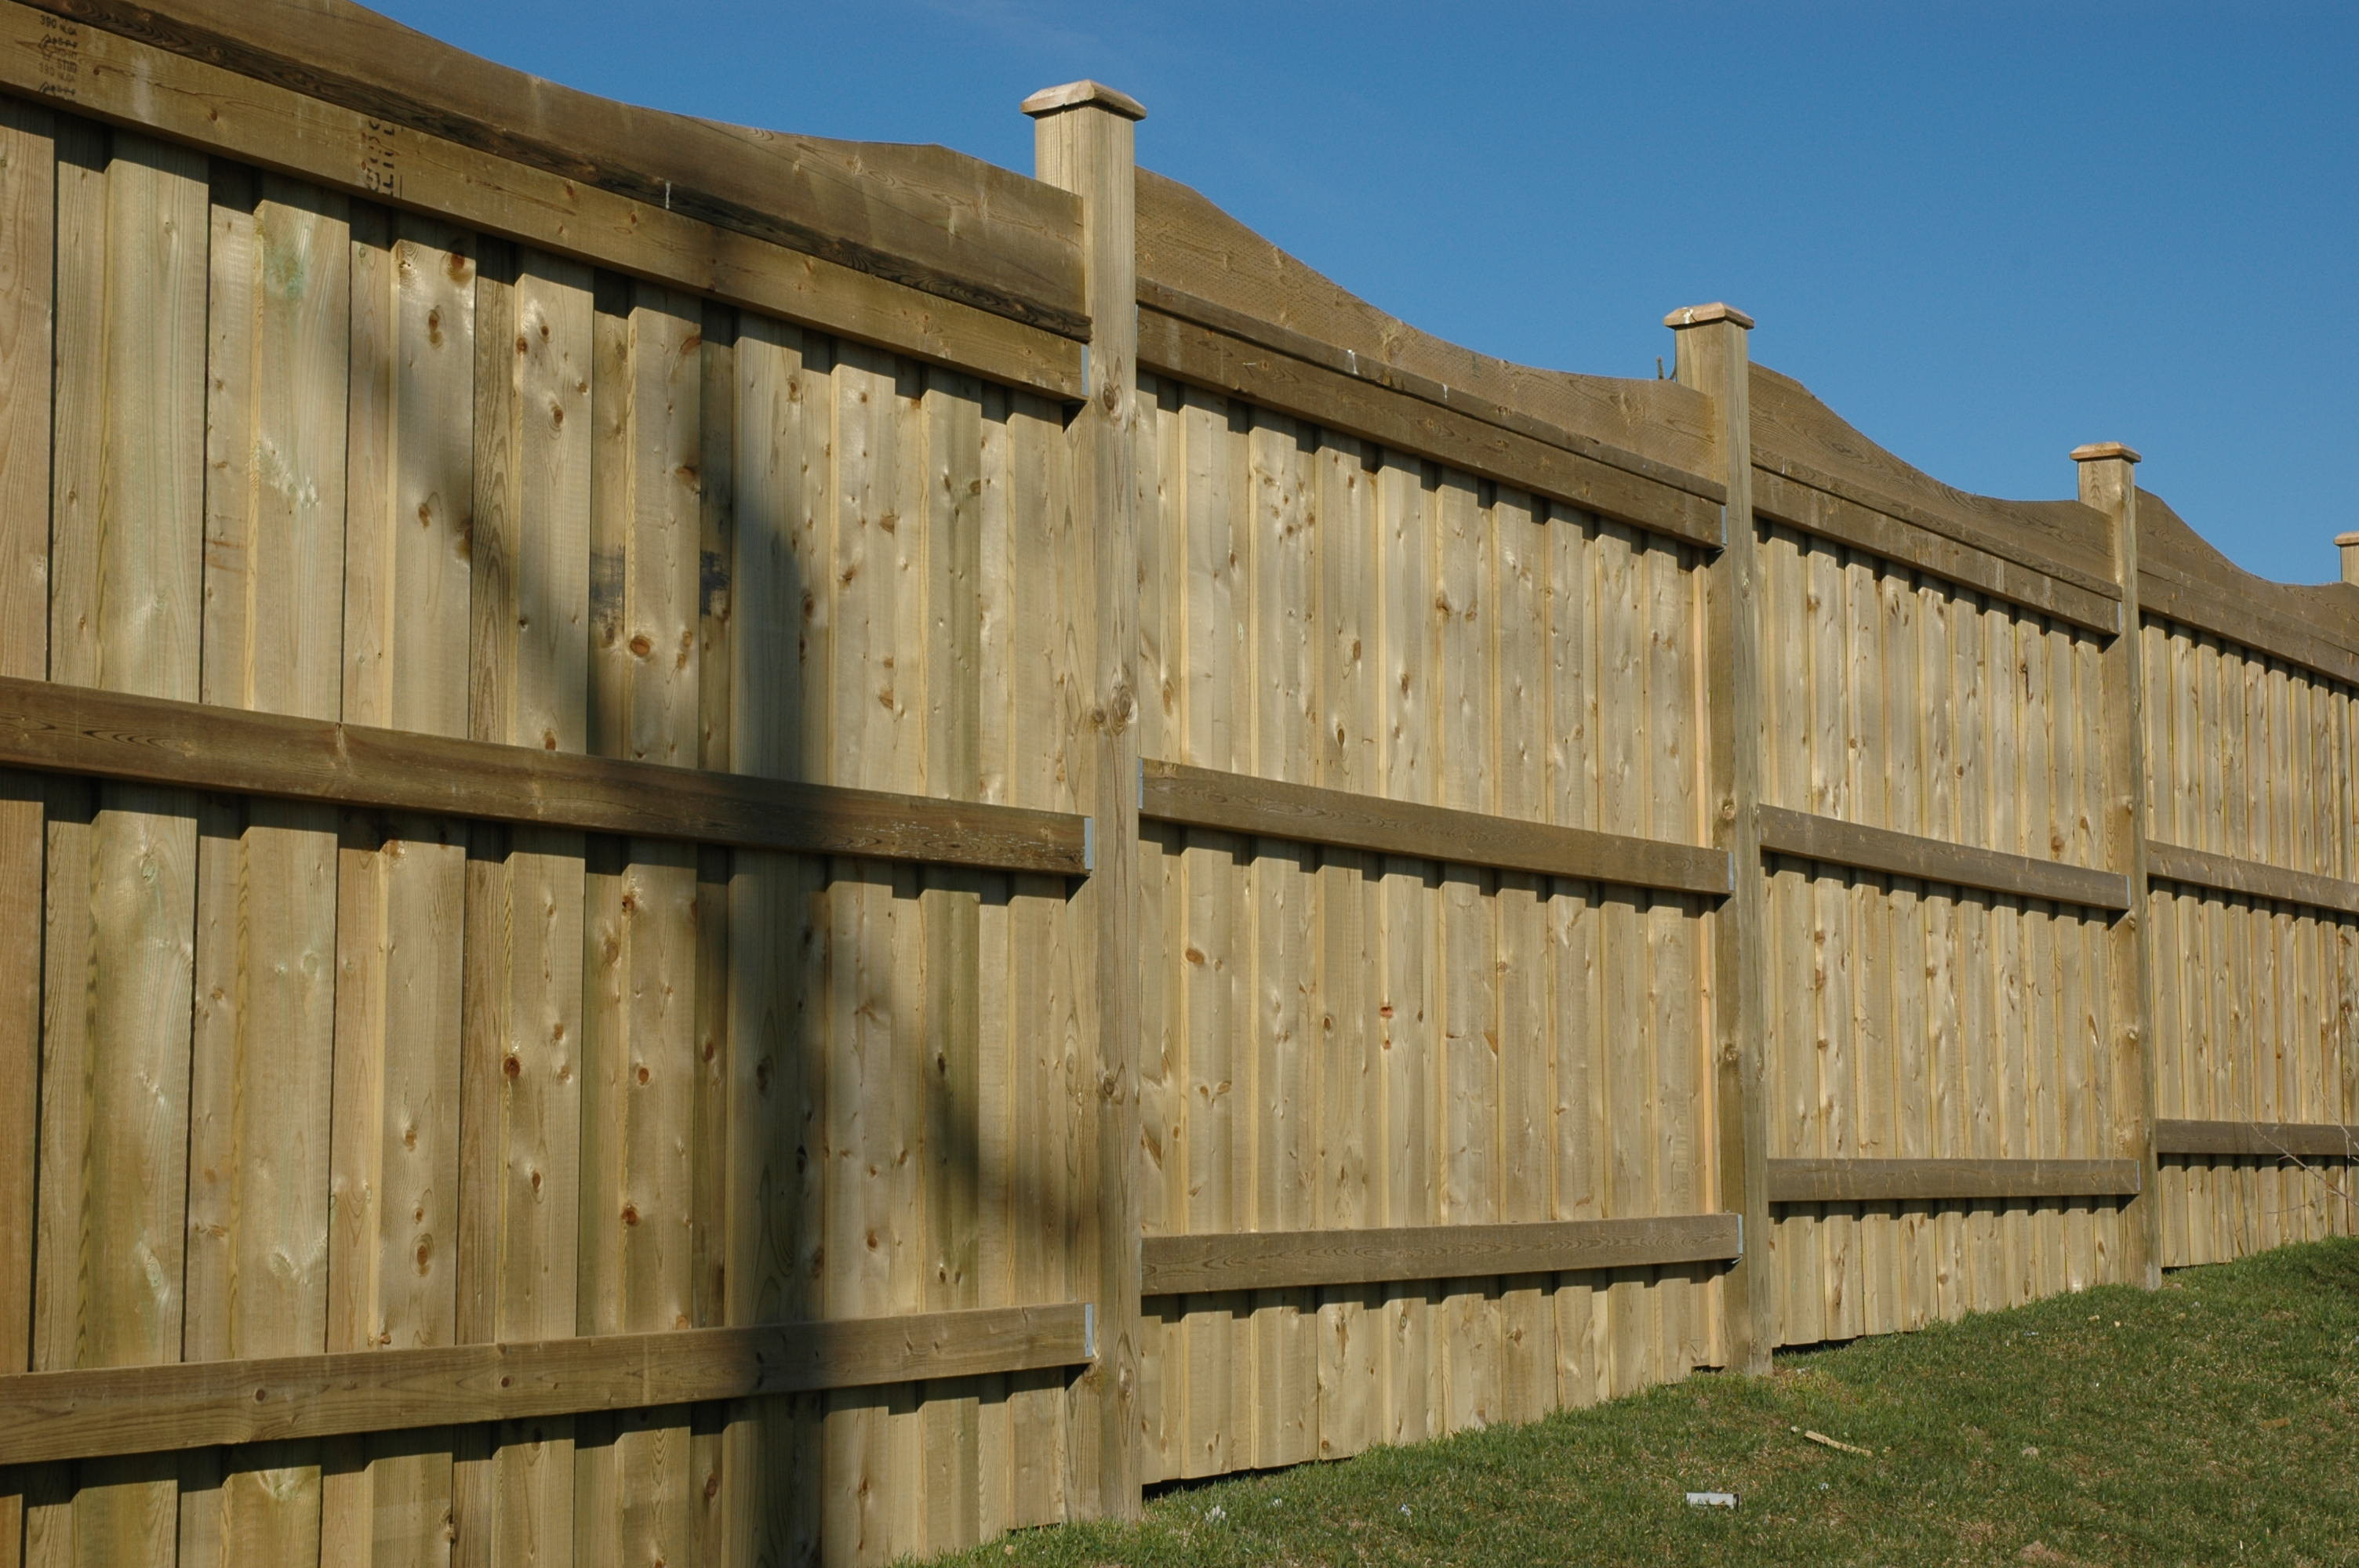 DIY Fence Building  PDF How To Build A 6 Foot Wood Privacy Fence Plans DIY